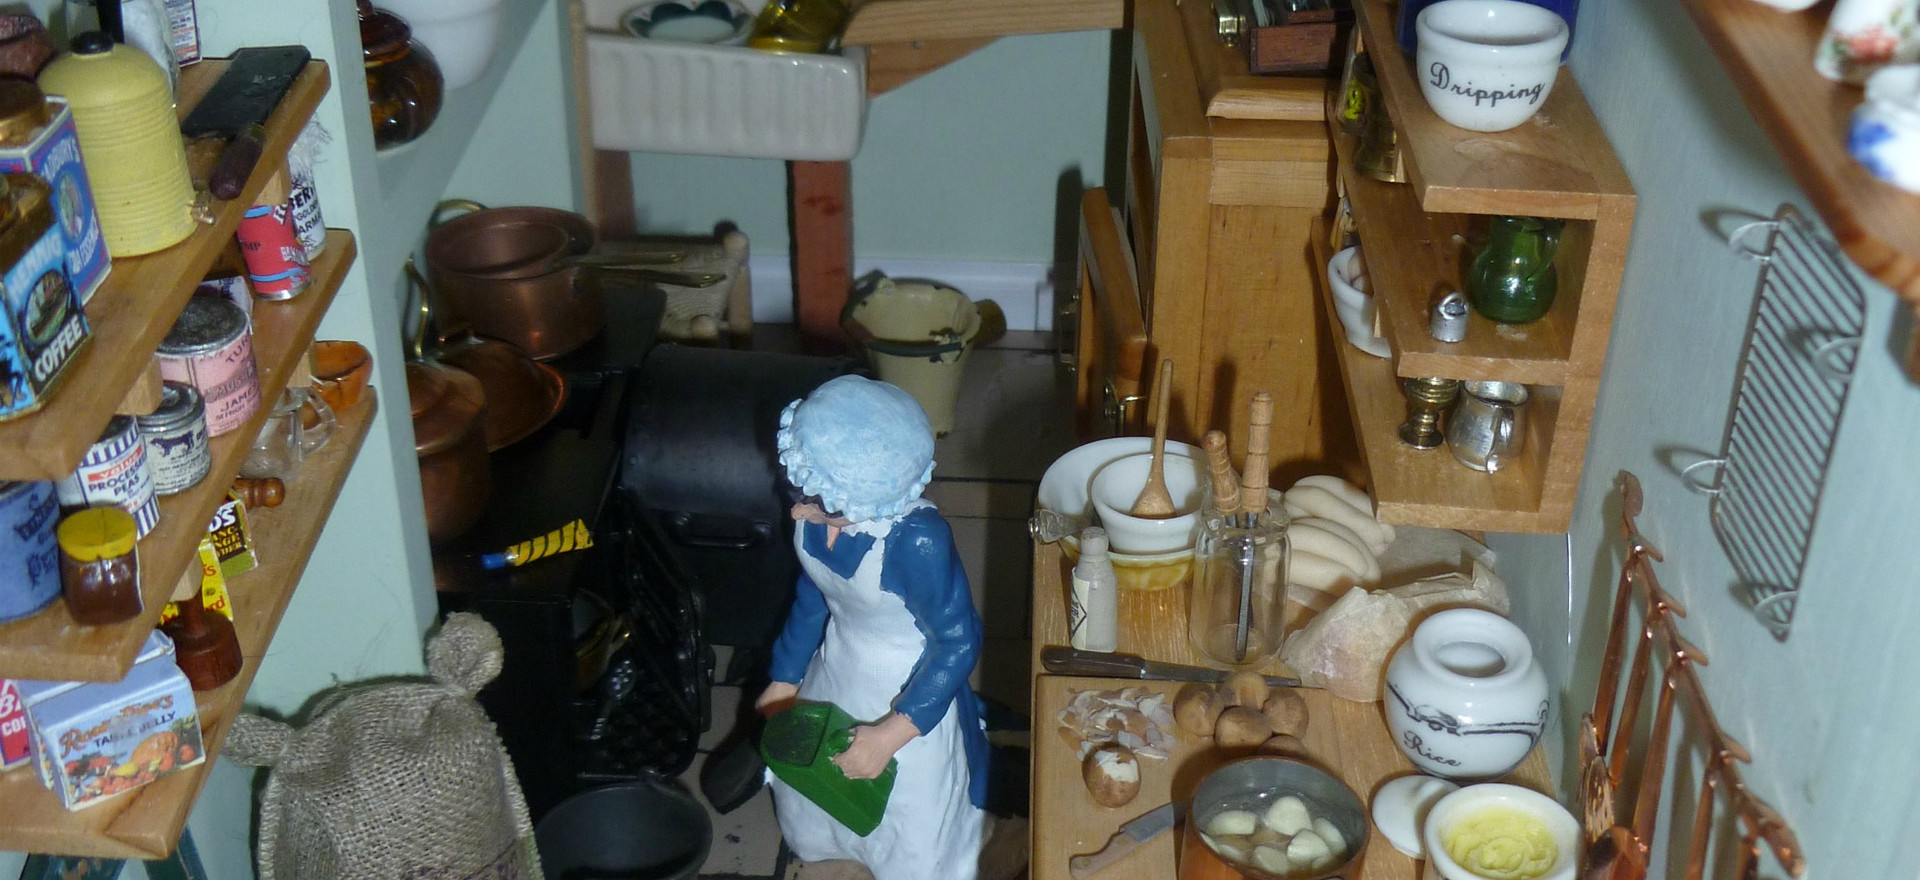 The Dolls House - a tale in minature